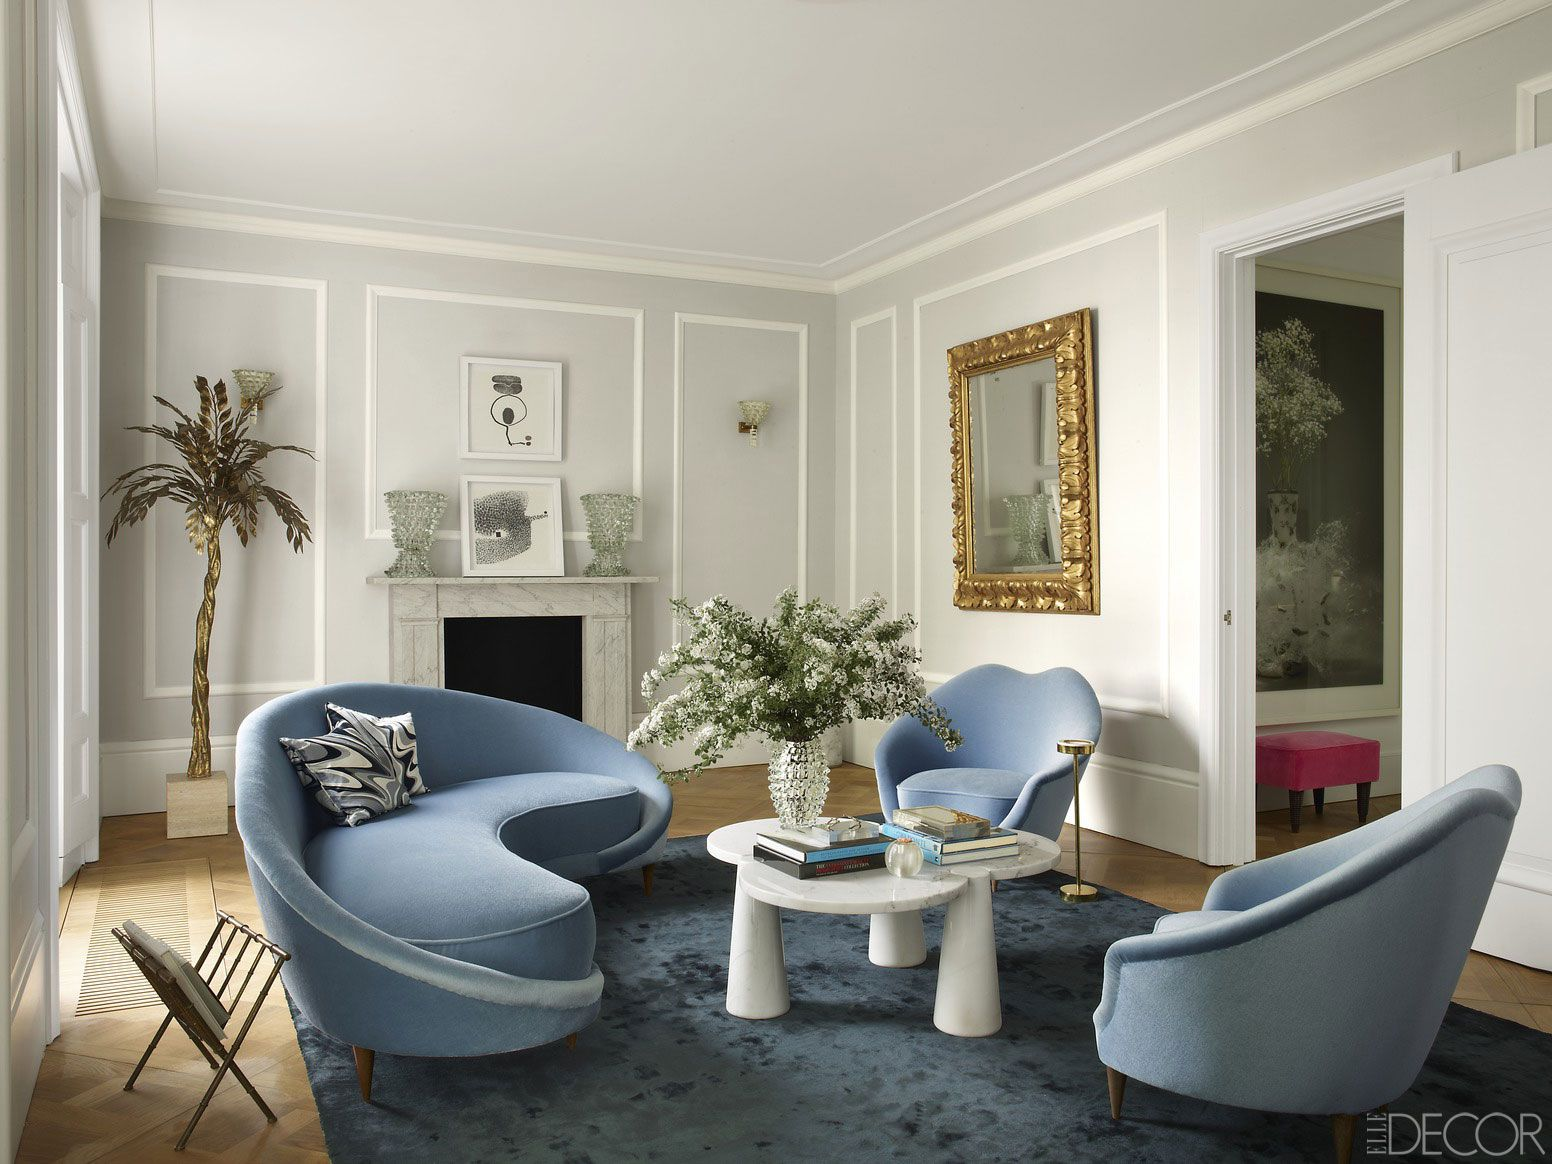 Mindful Interiors - Image via Simon Upton for Elle Decor